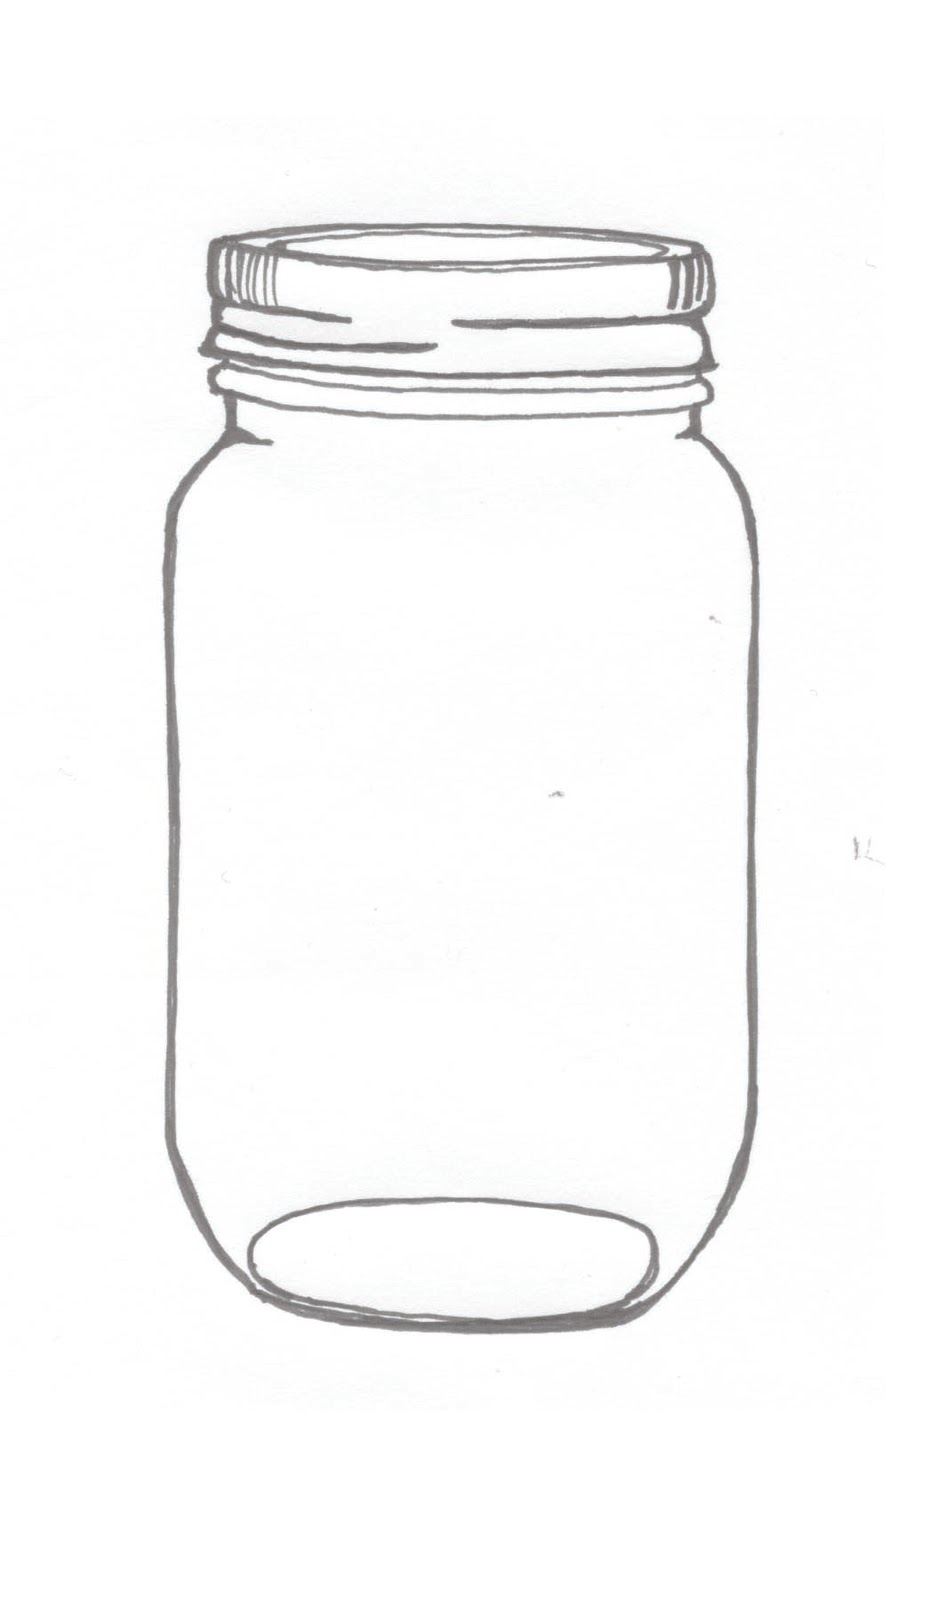 Canning jar clipart stock Mason jar on mason jars clip art and free printable - Cliparting.com stock